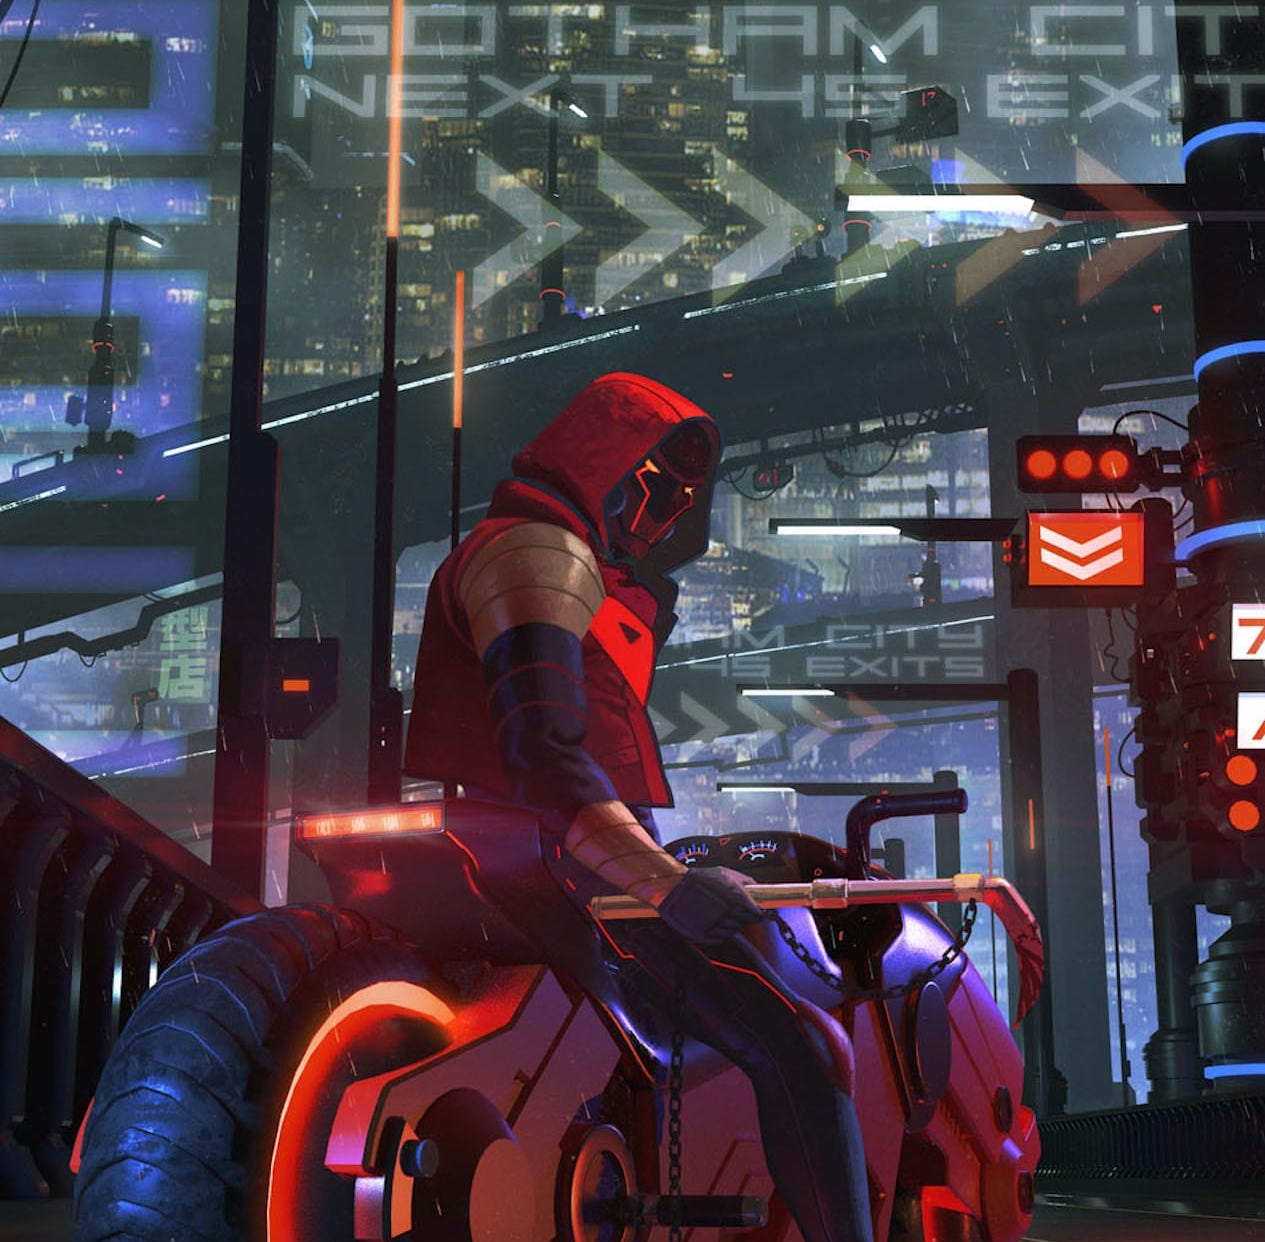 DC Comics launching Red Hood focused 'Future State: Gotham' May 11